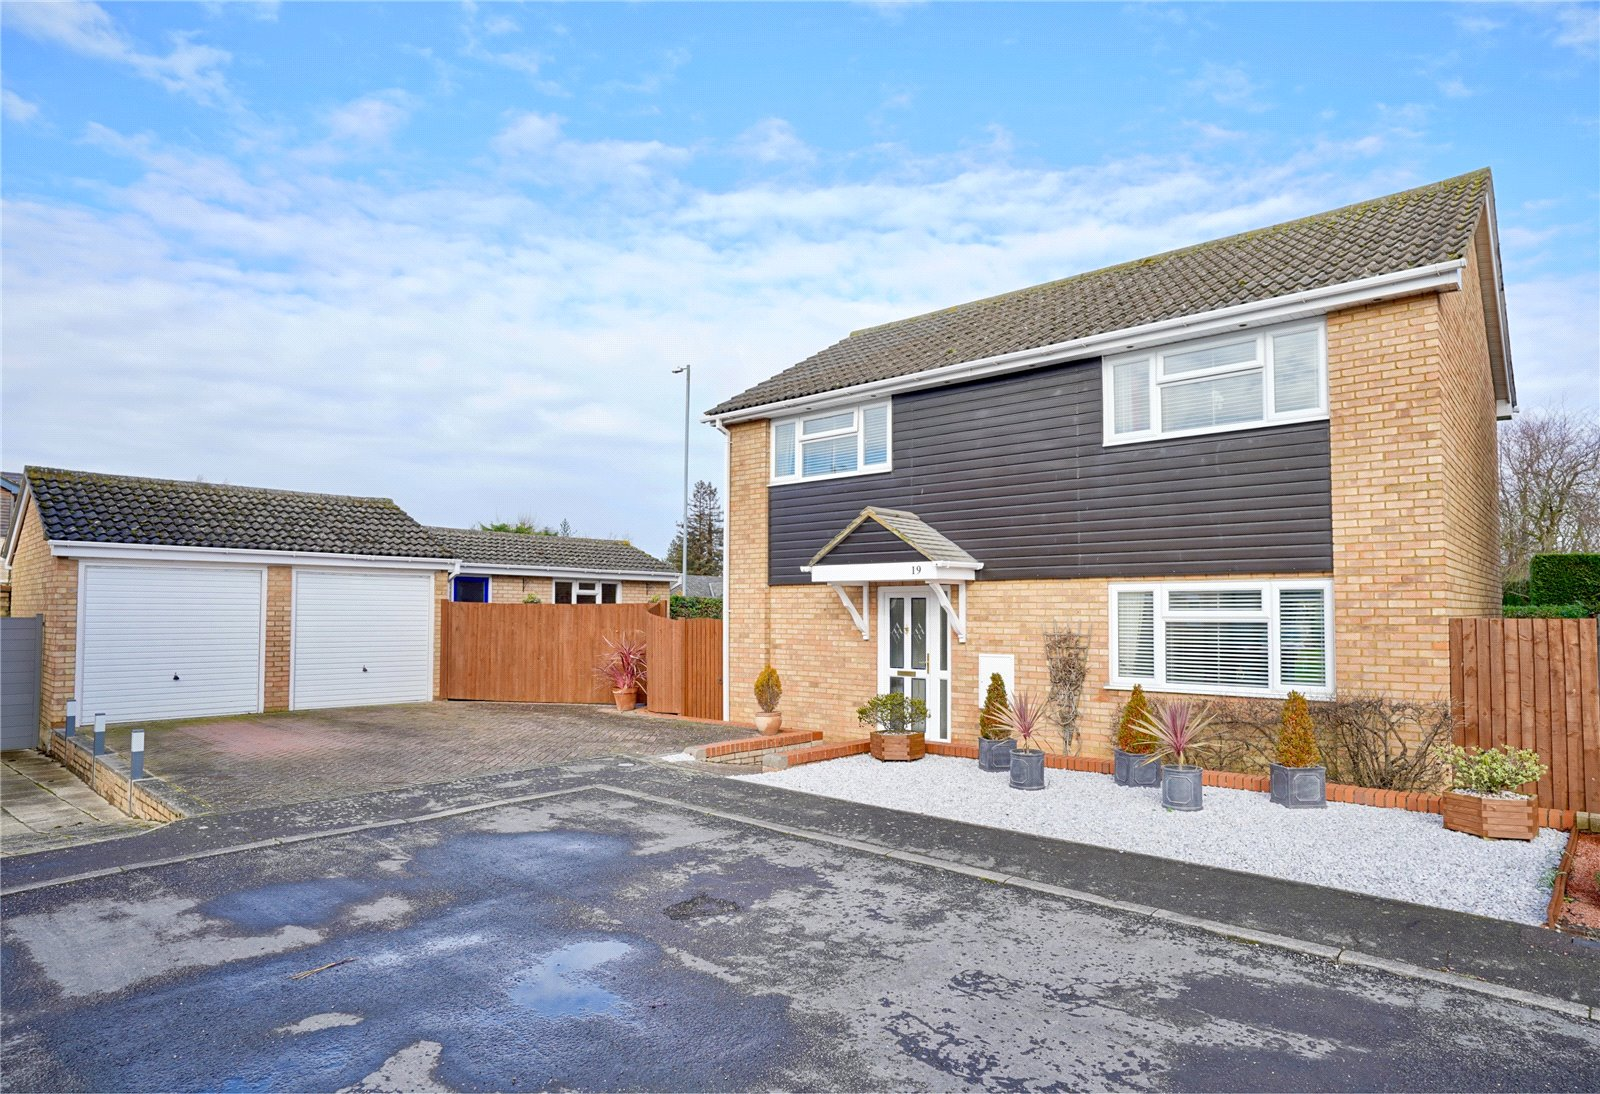 4 bed house for sale in Eaton Ford, Coleridge Court, PE19 7LY  - Property Image 1